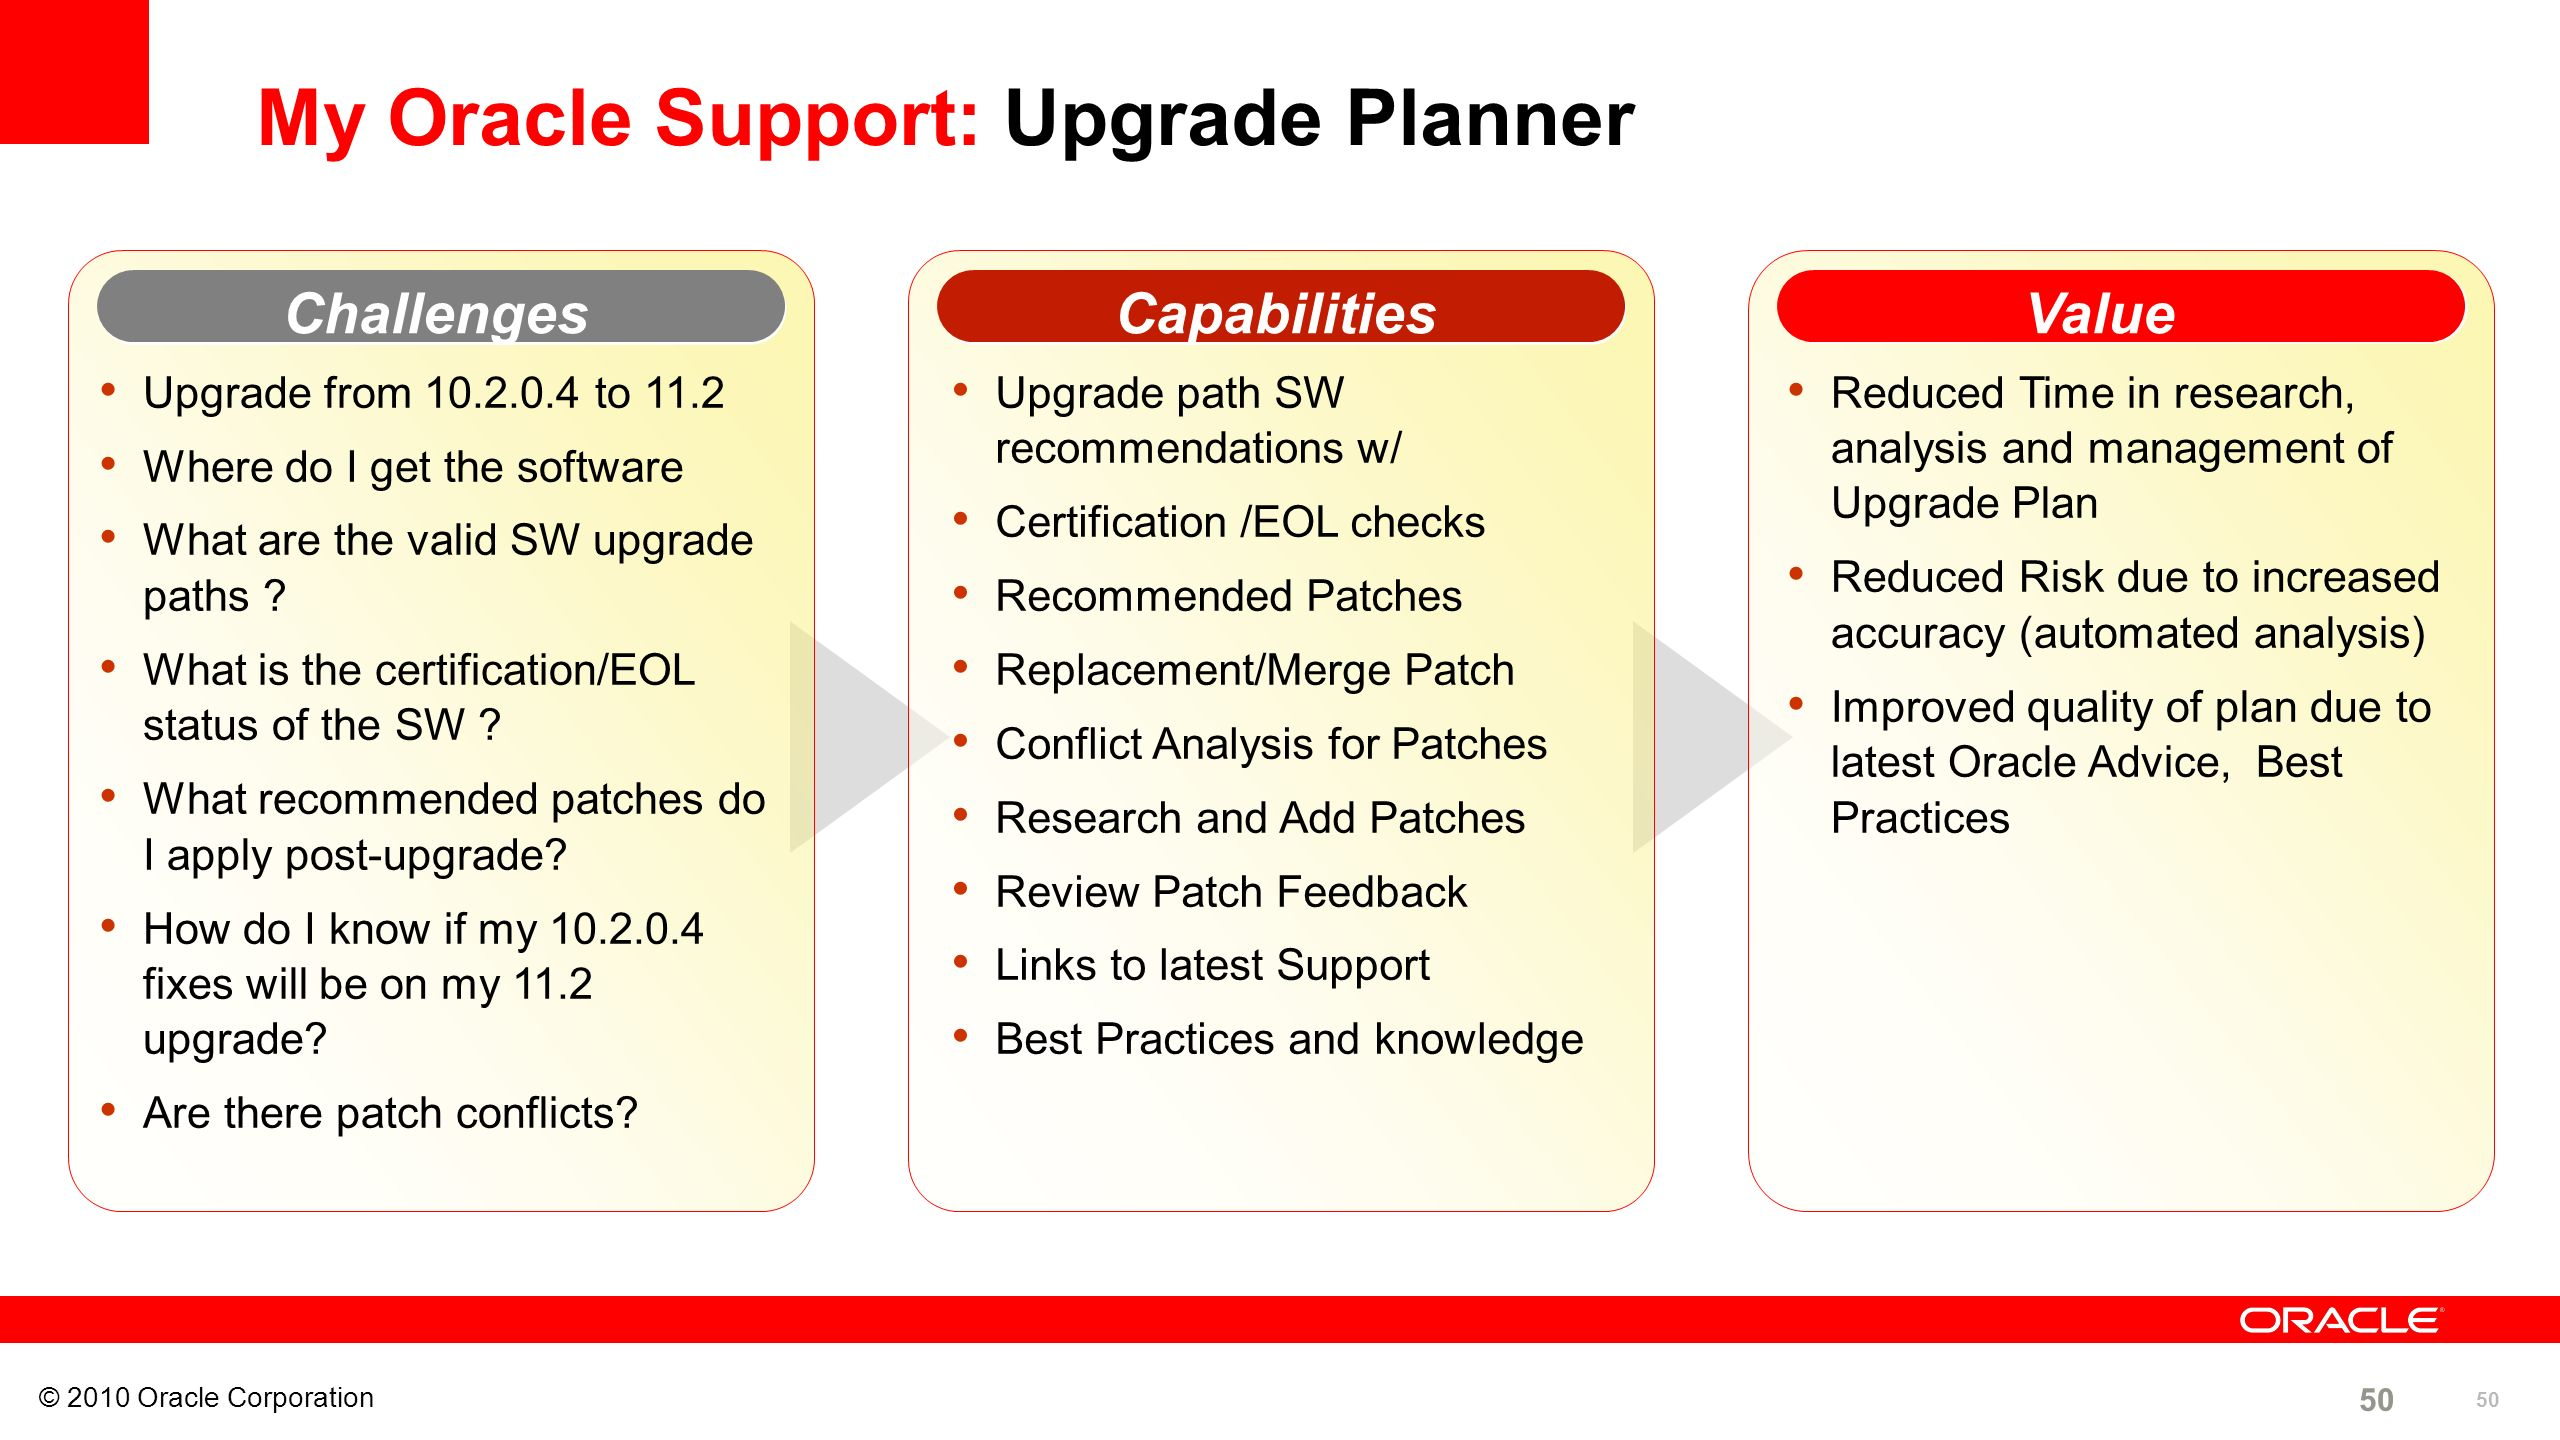 My Oracle Support: Upgrade Planner